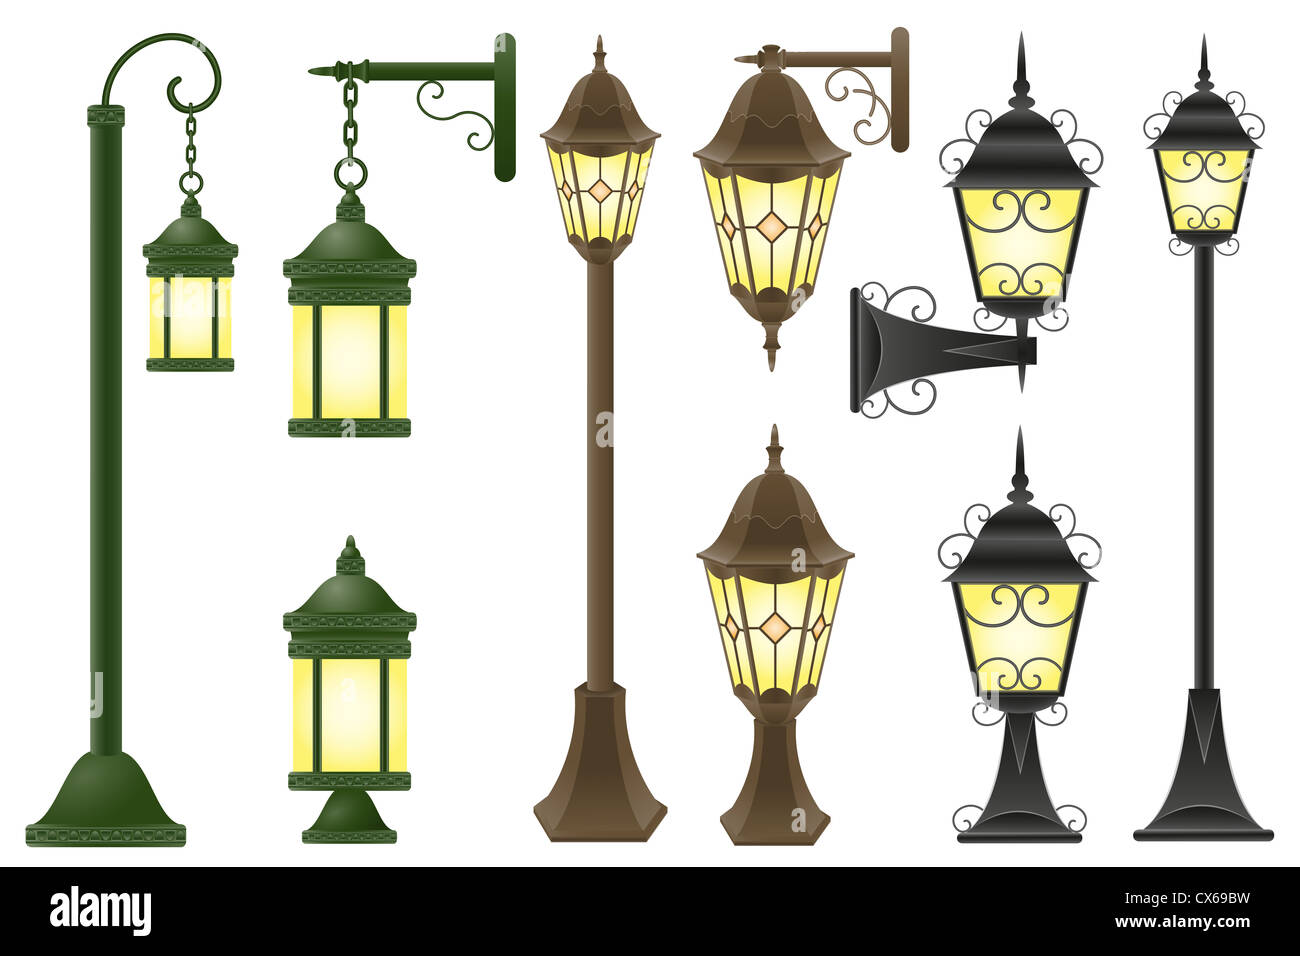 set streetlight illustration isolated on white background Stock Photo